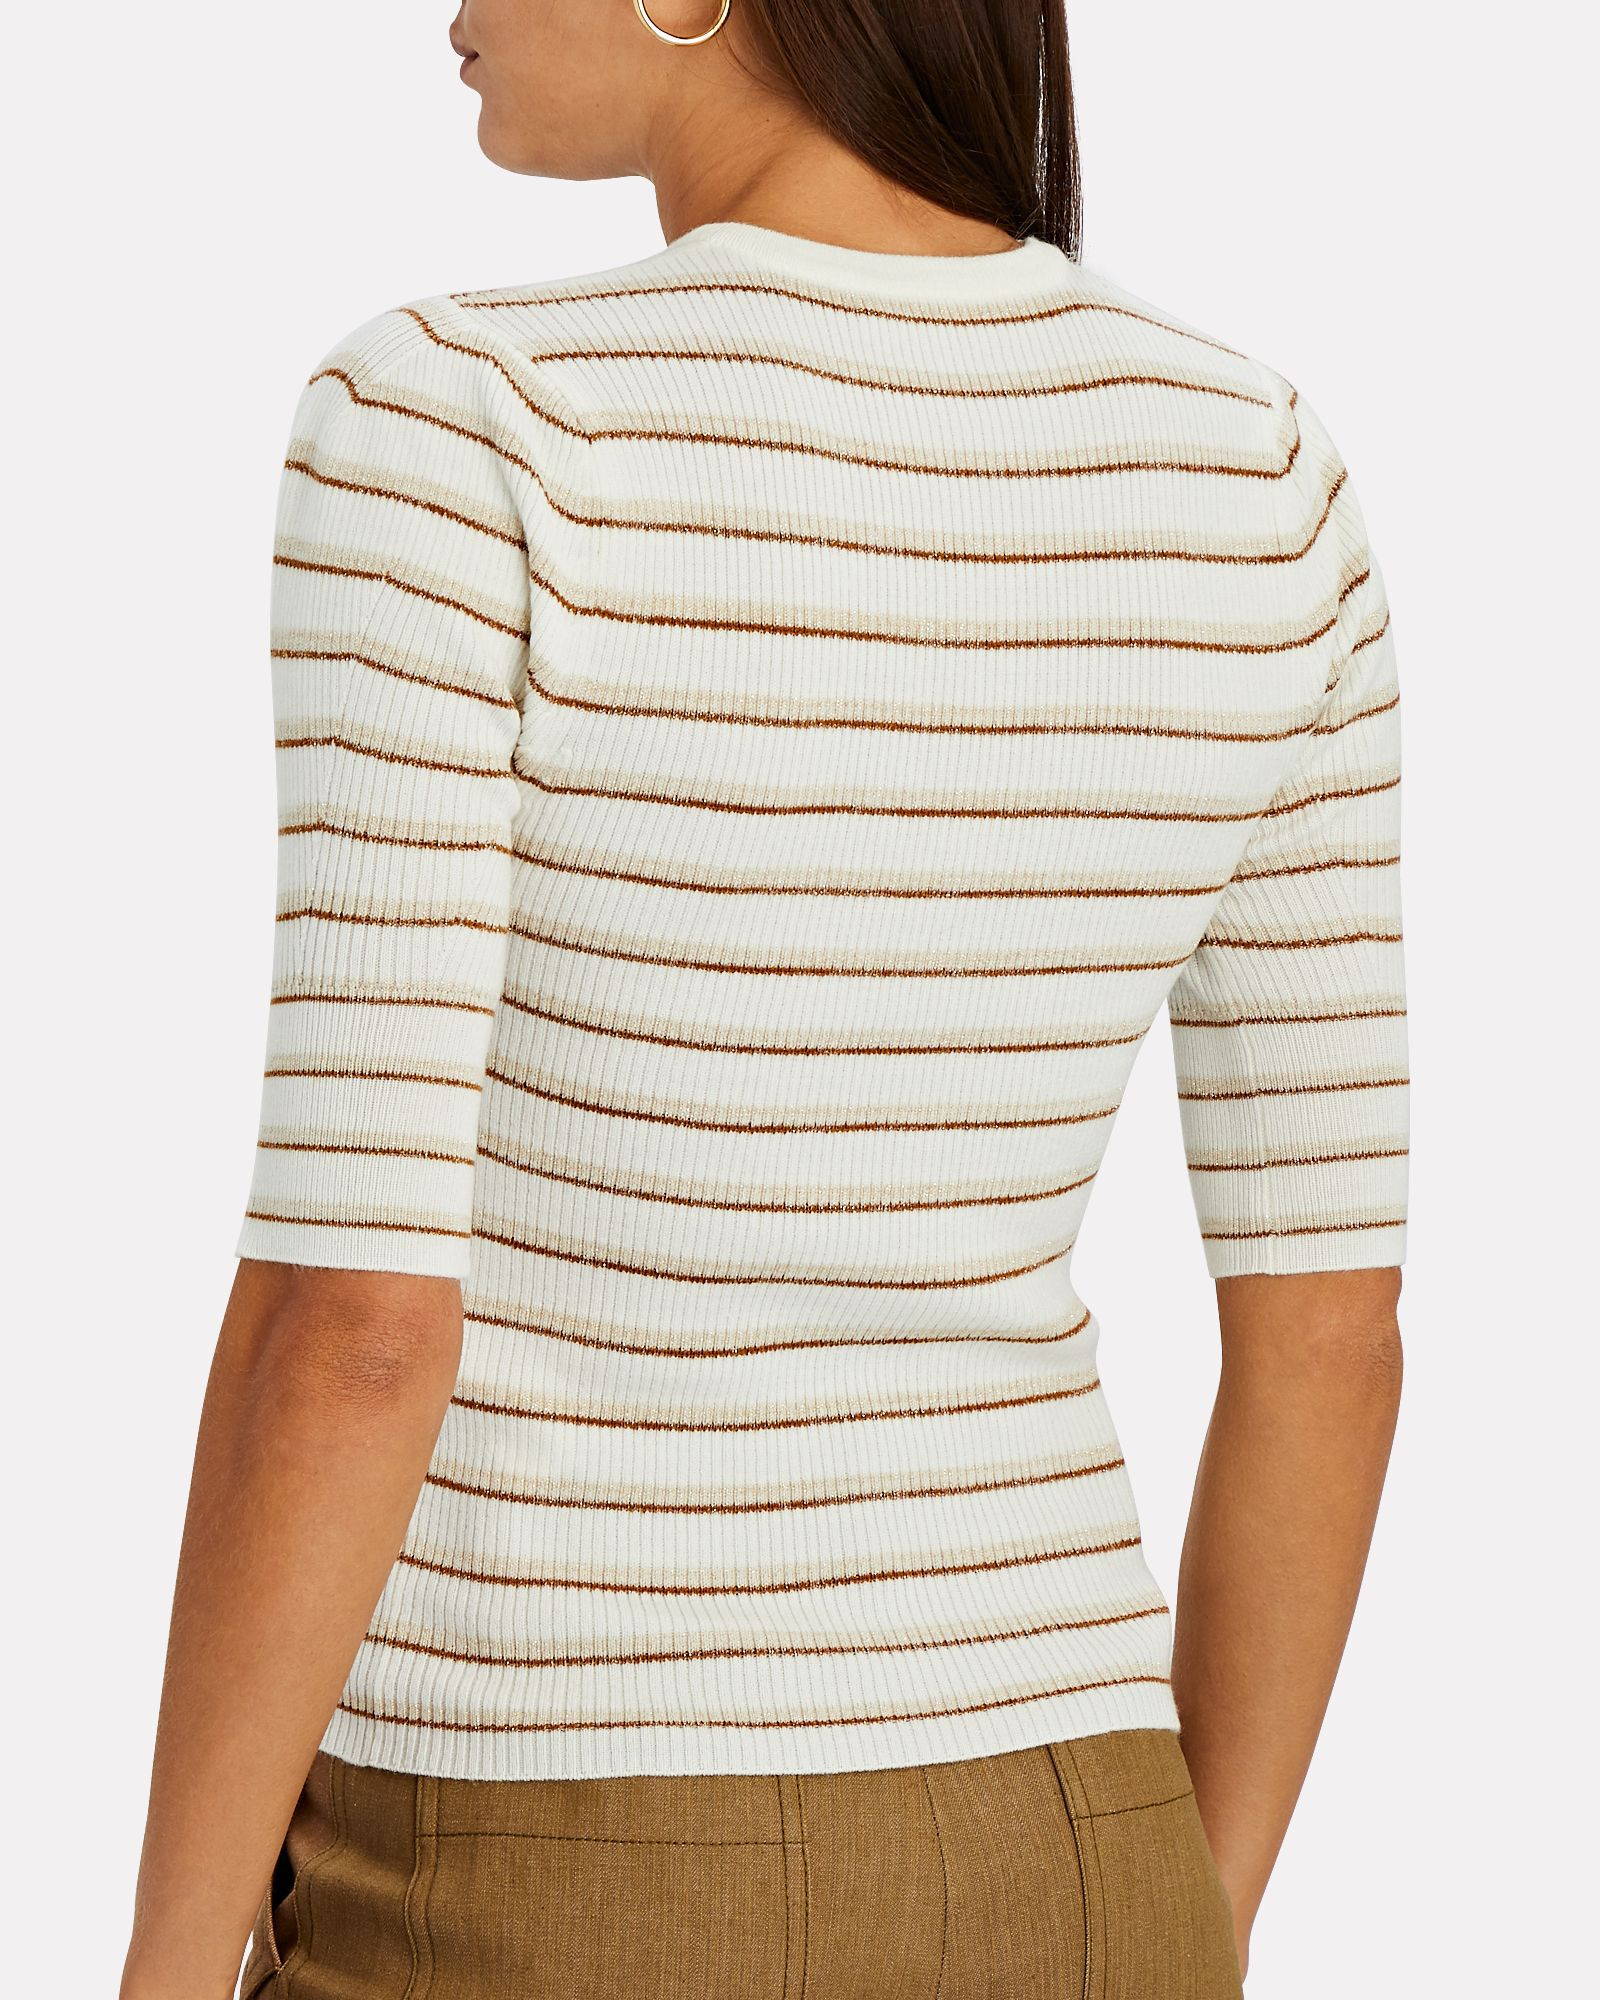 Striped Rib Knit Femme Top, MULTI, hi-res